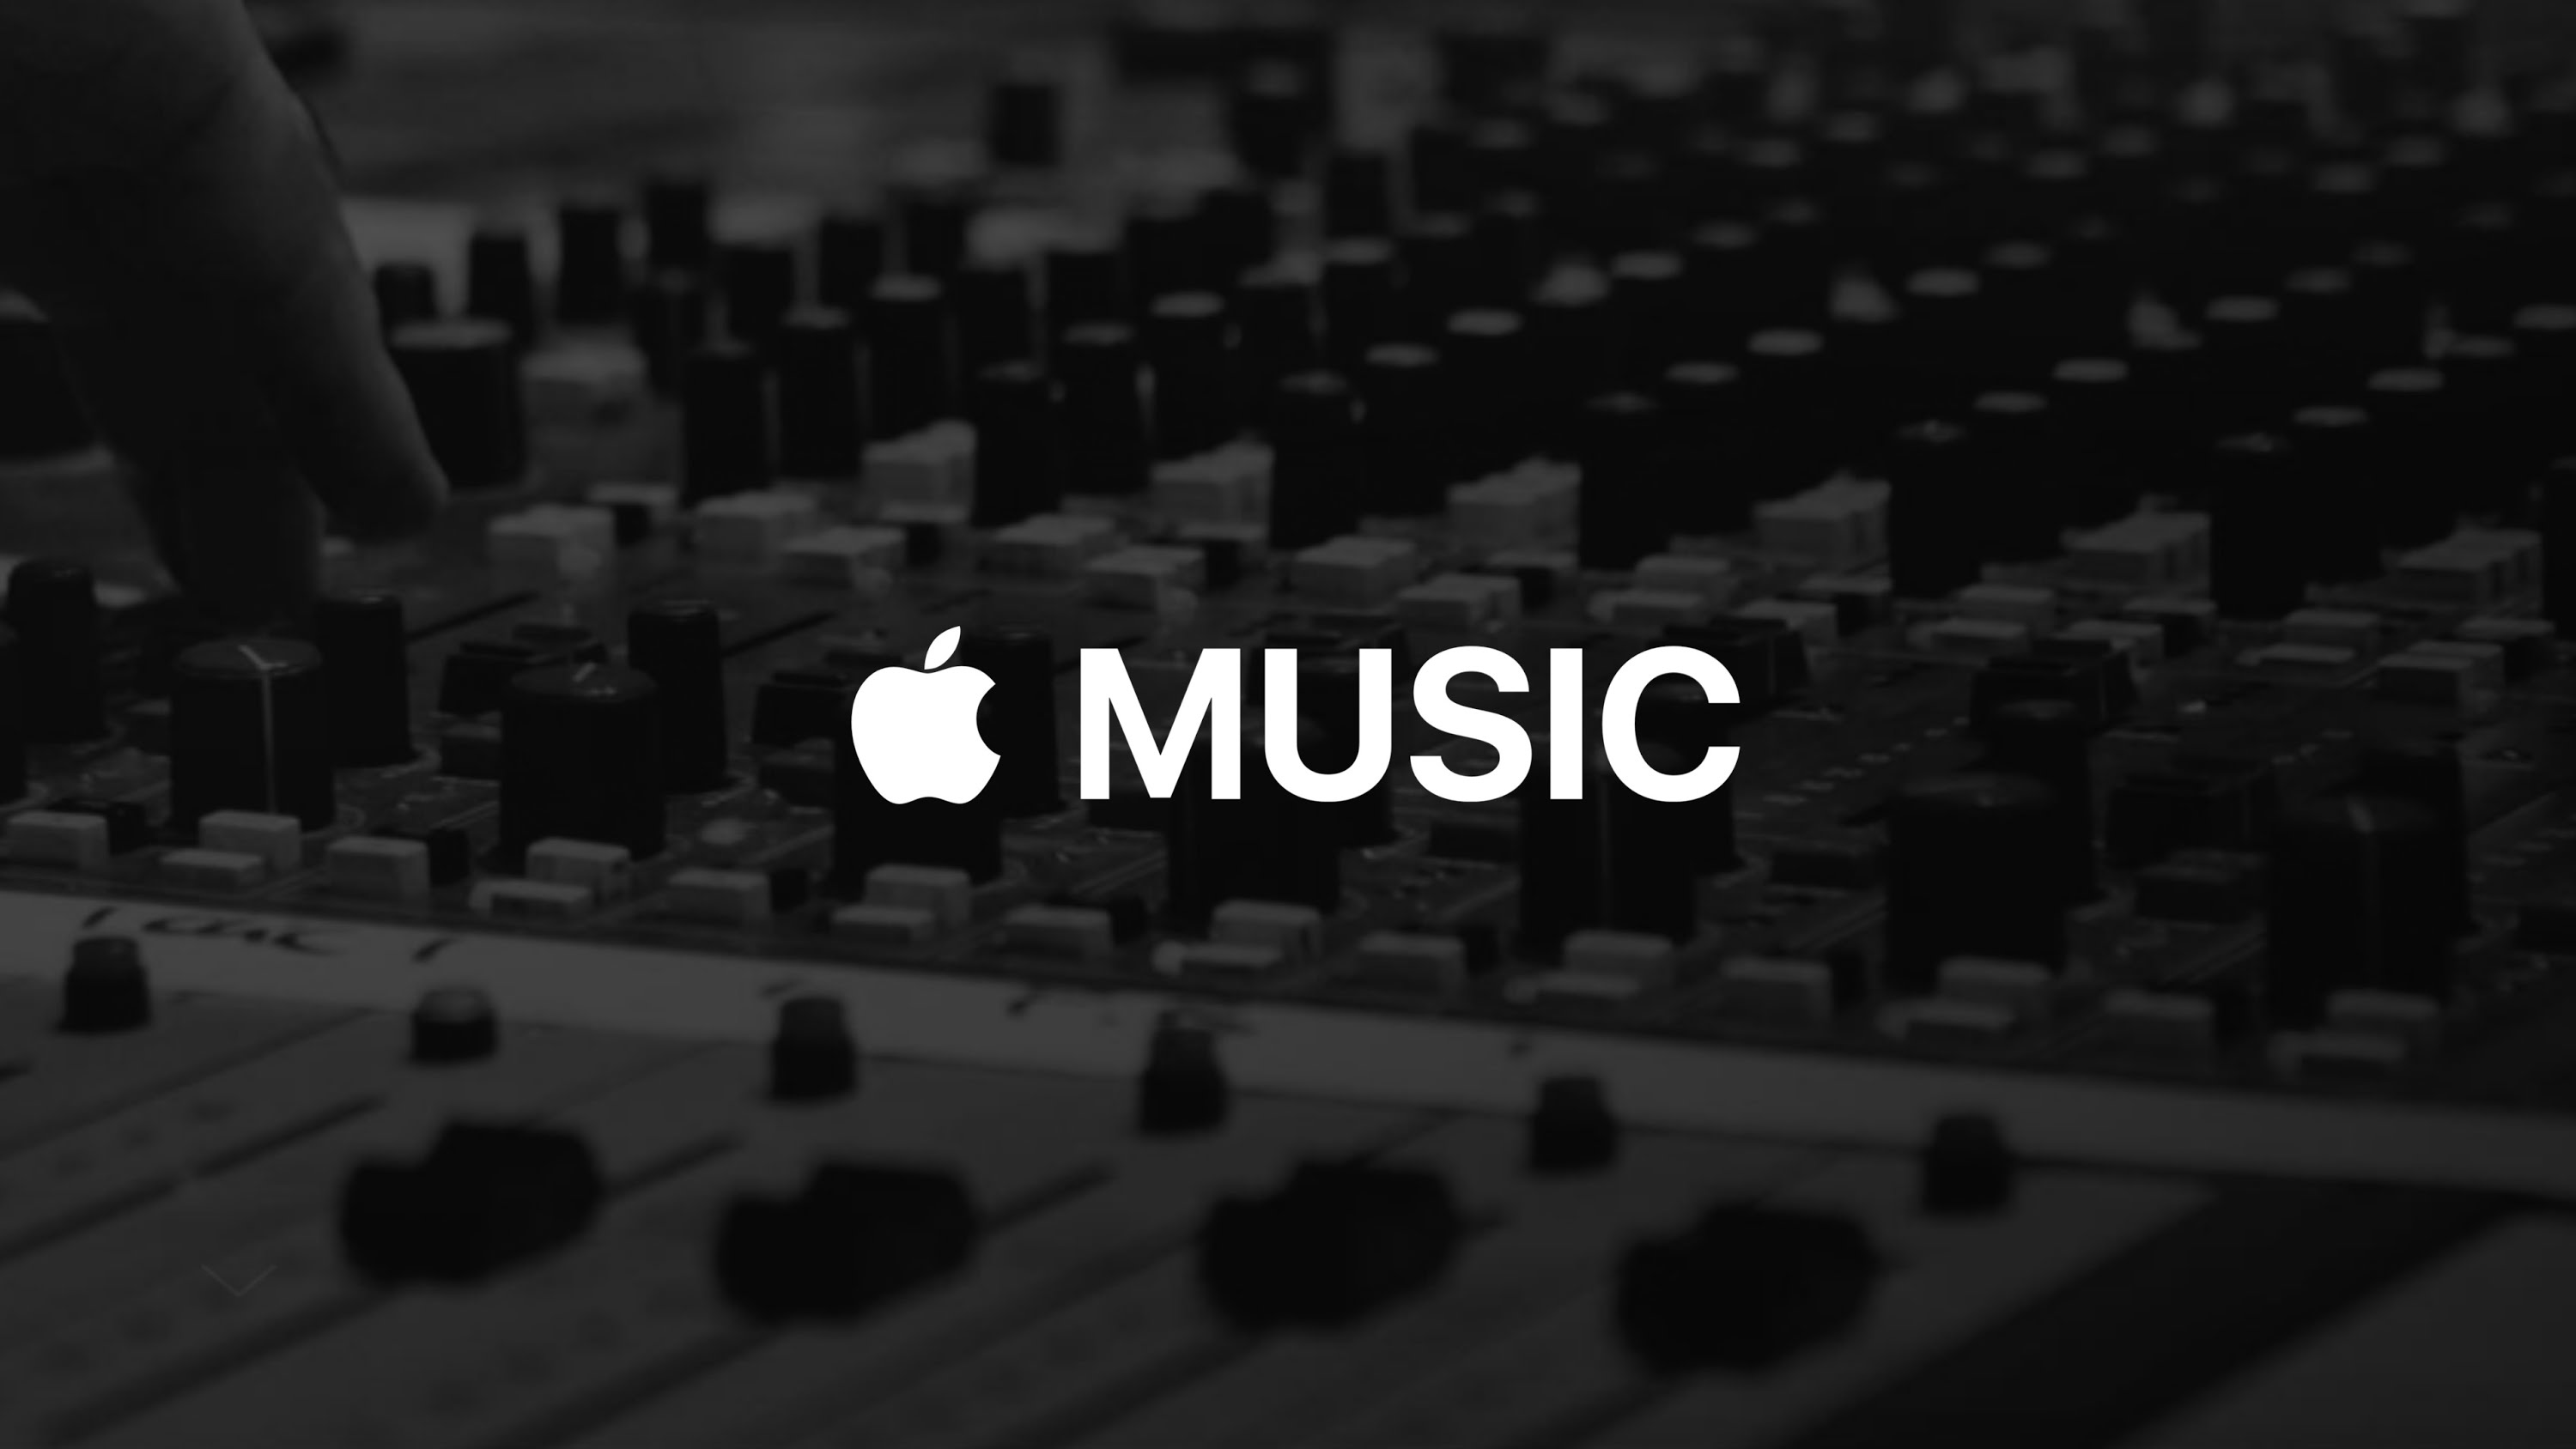 Apple Music Looking For Lower Streaming Royalties In New Deals With Labels